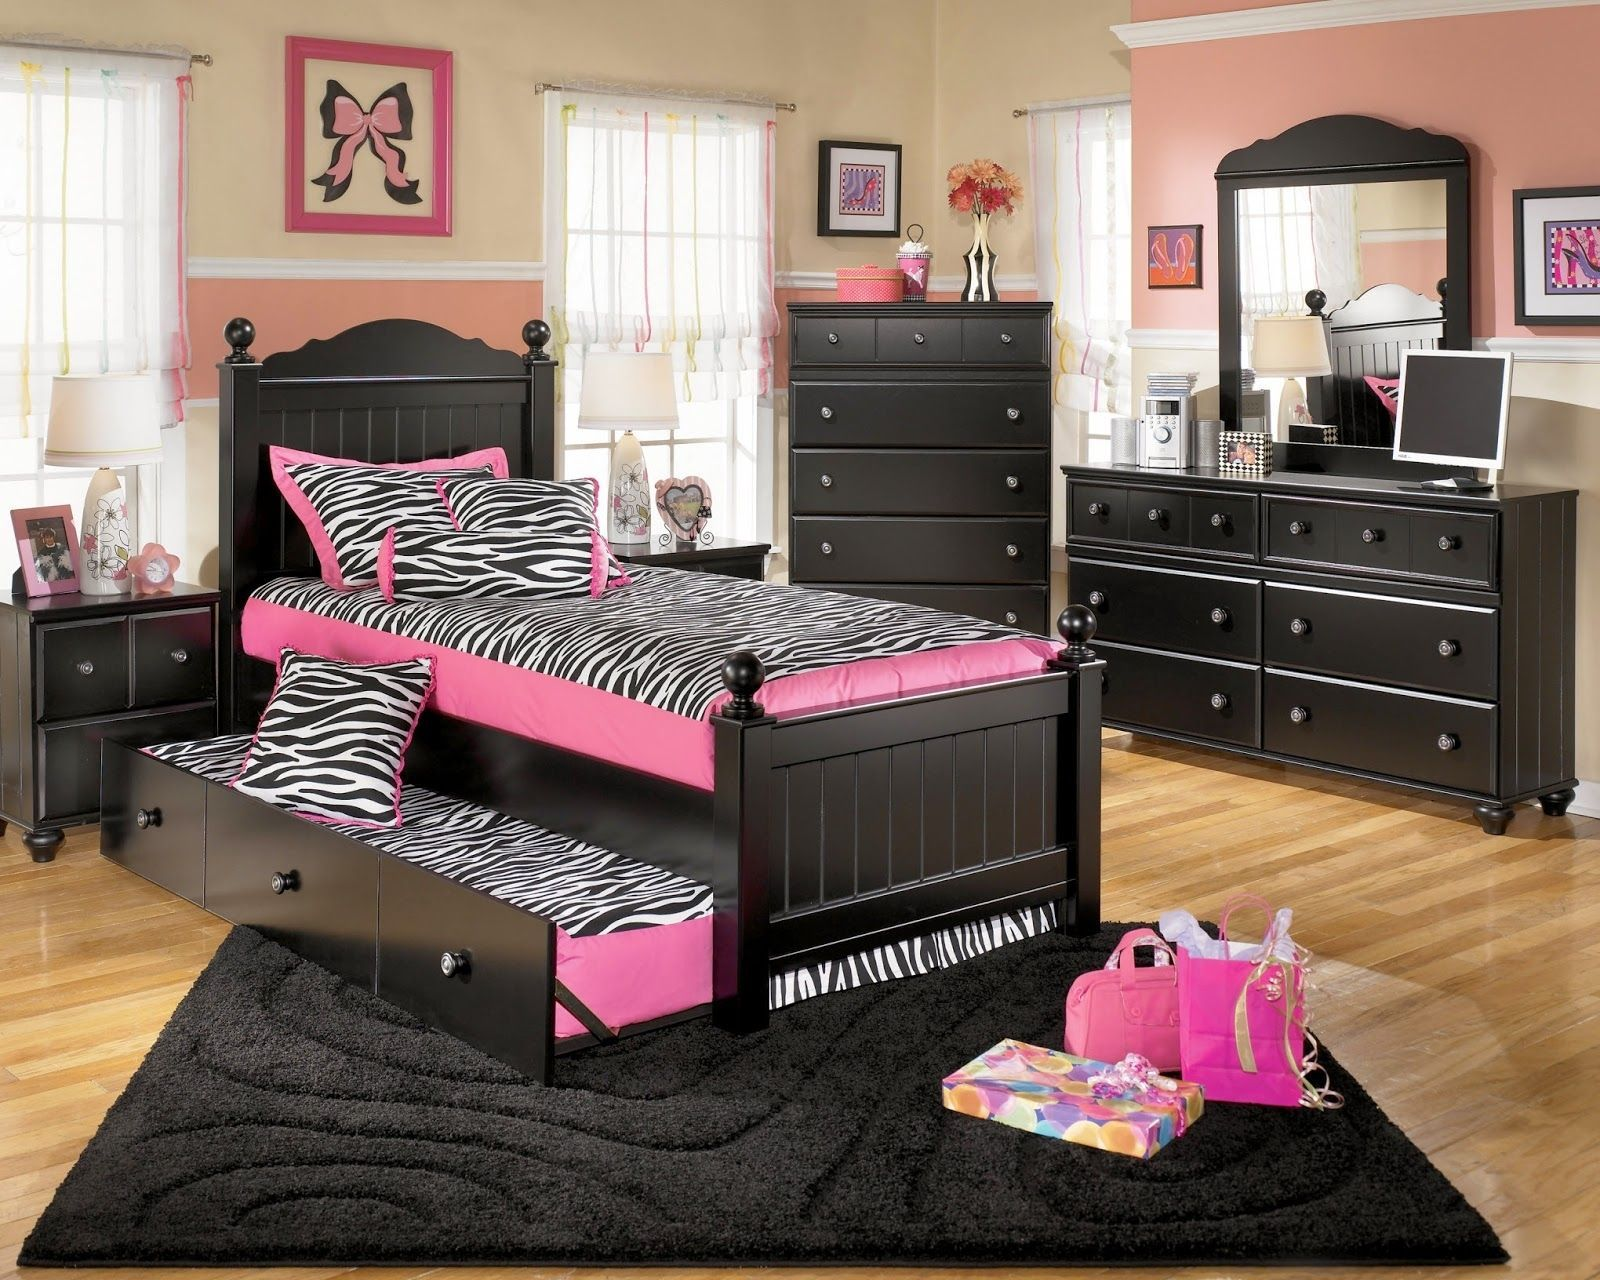 10 New Cheap Bedroom Sets For Girls Ideas For Your